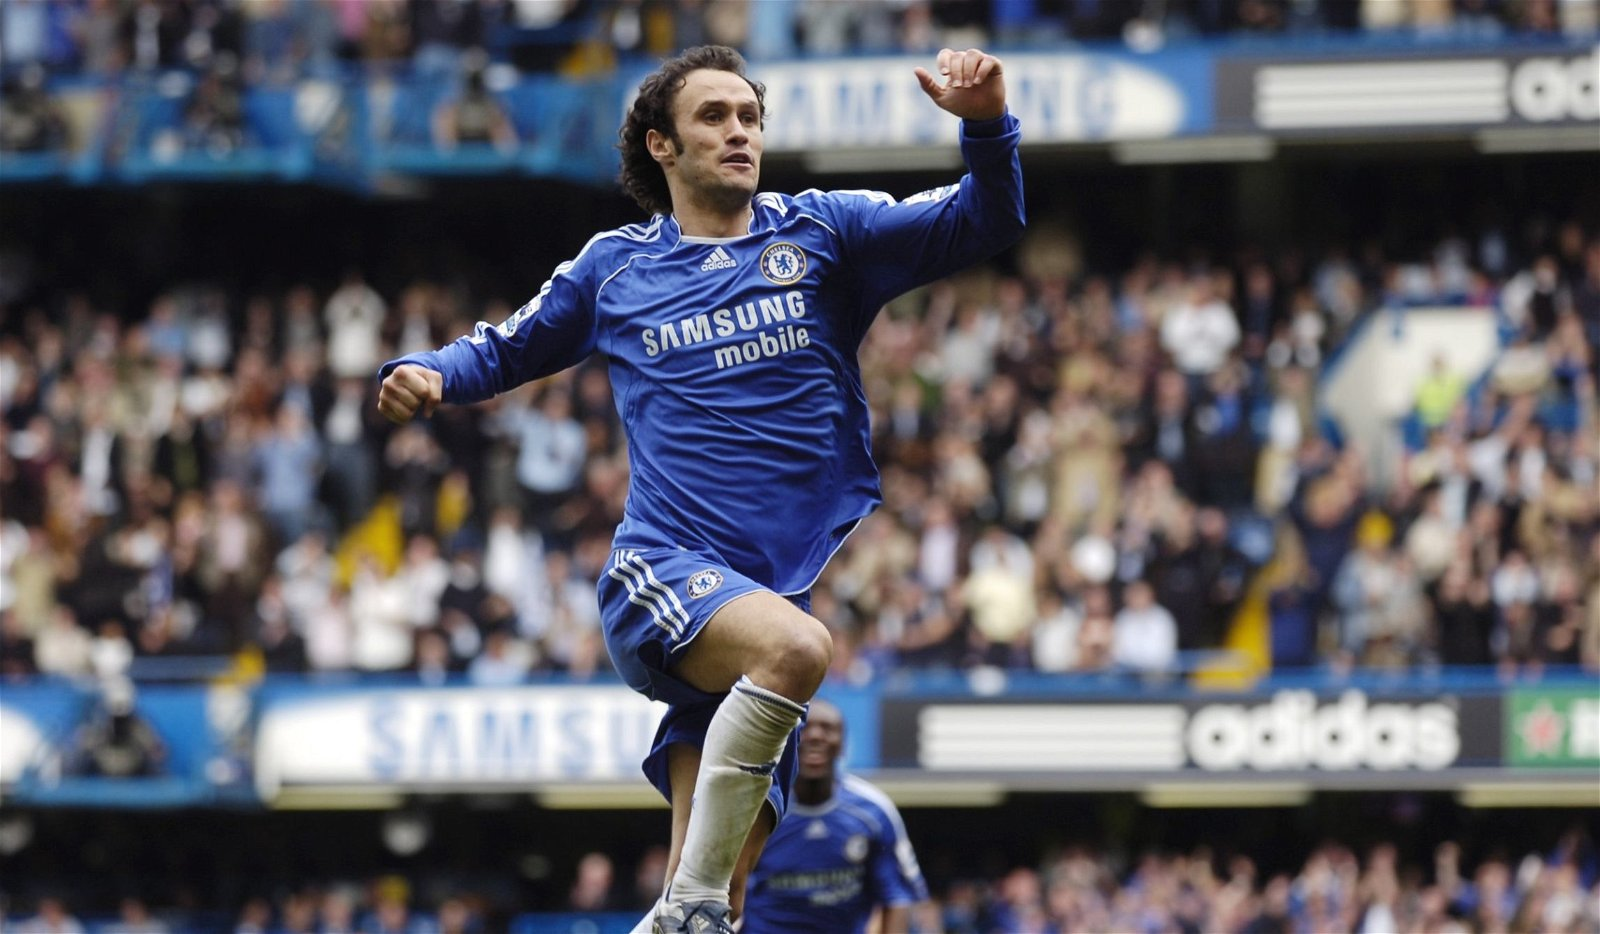 Ricardo Carvalho celebrates scoring against Tottenham